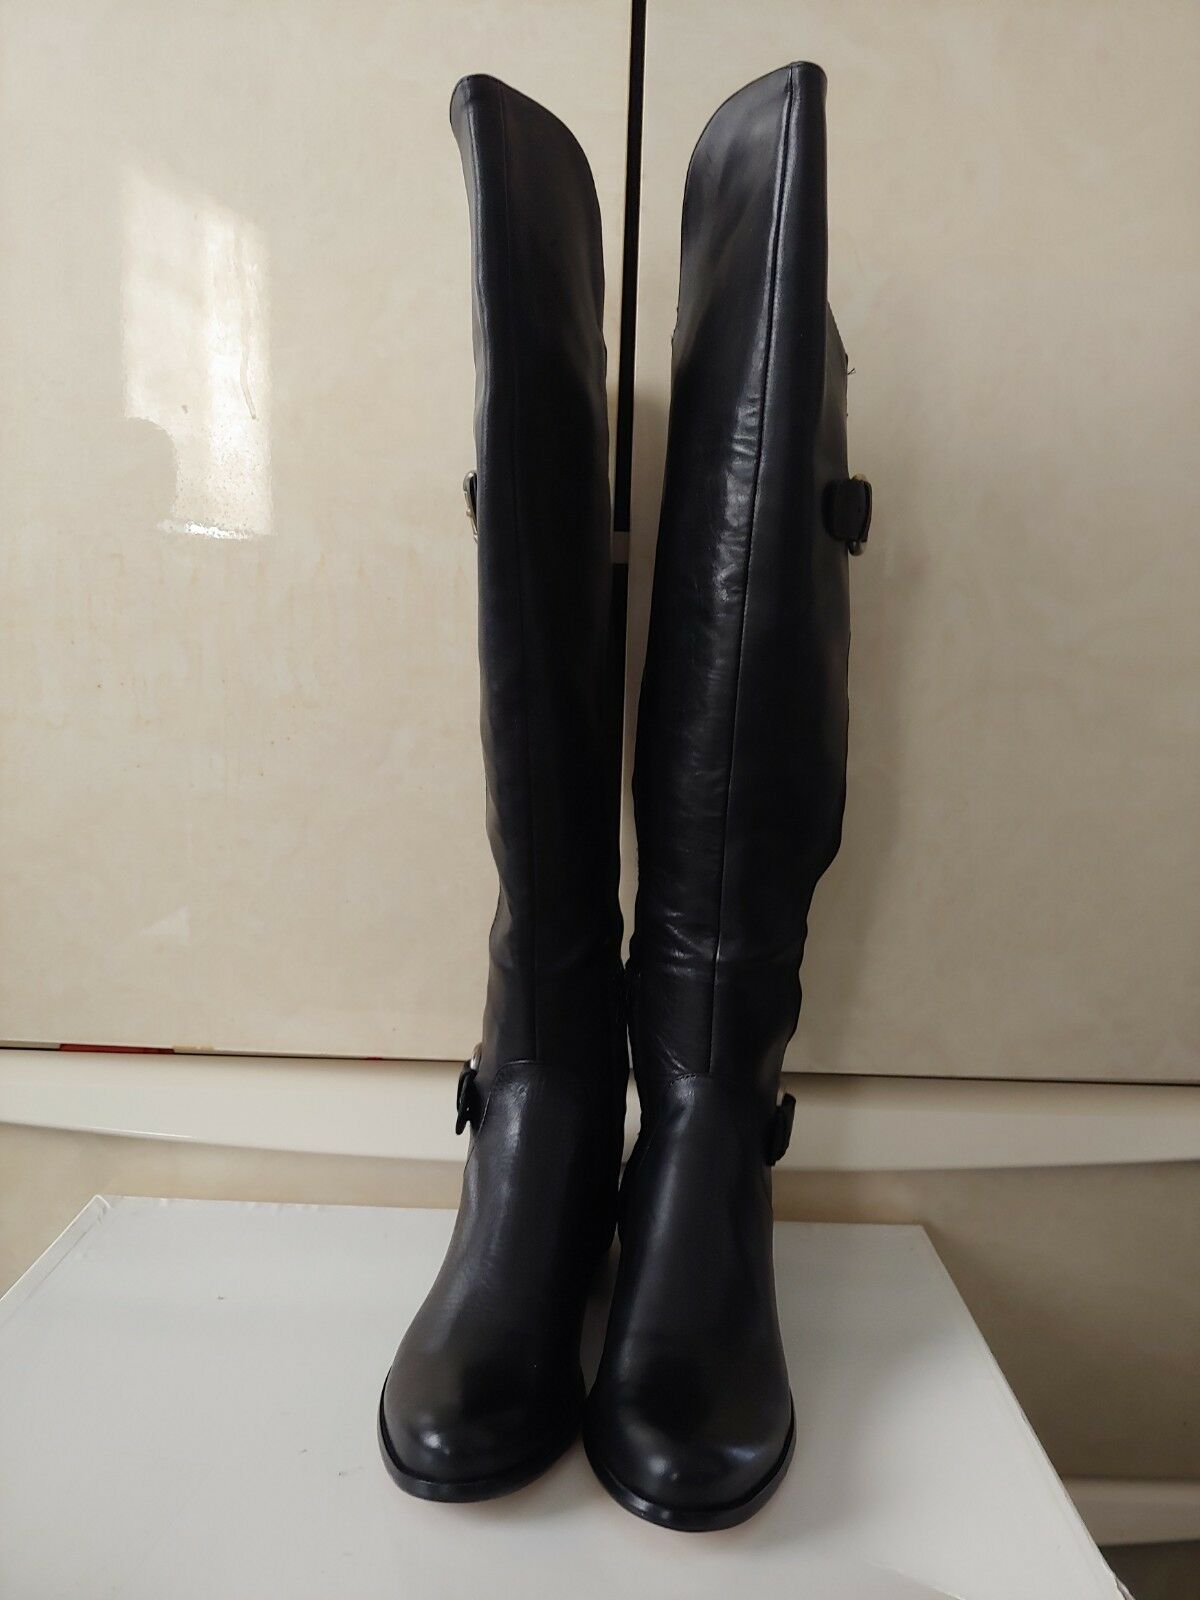 Women's Corso Como Women's Splendid Black Leather Riding Boot Size 7.5 (NIB)